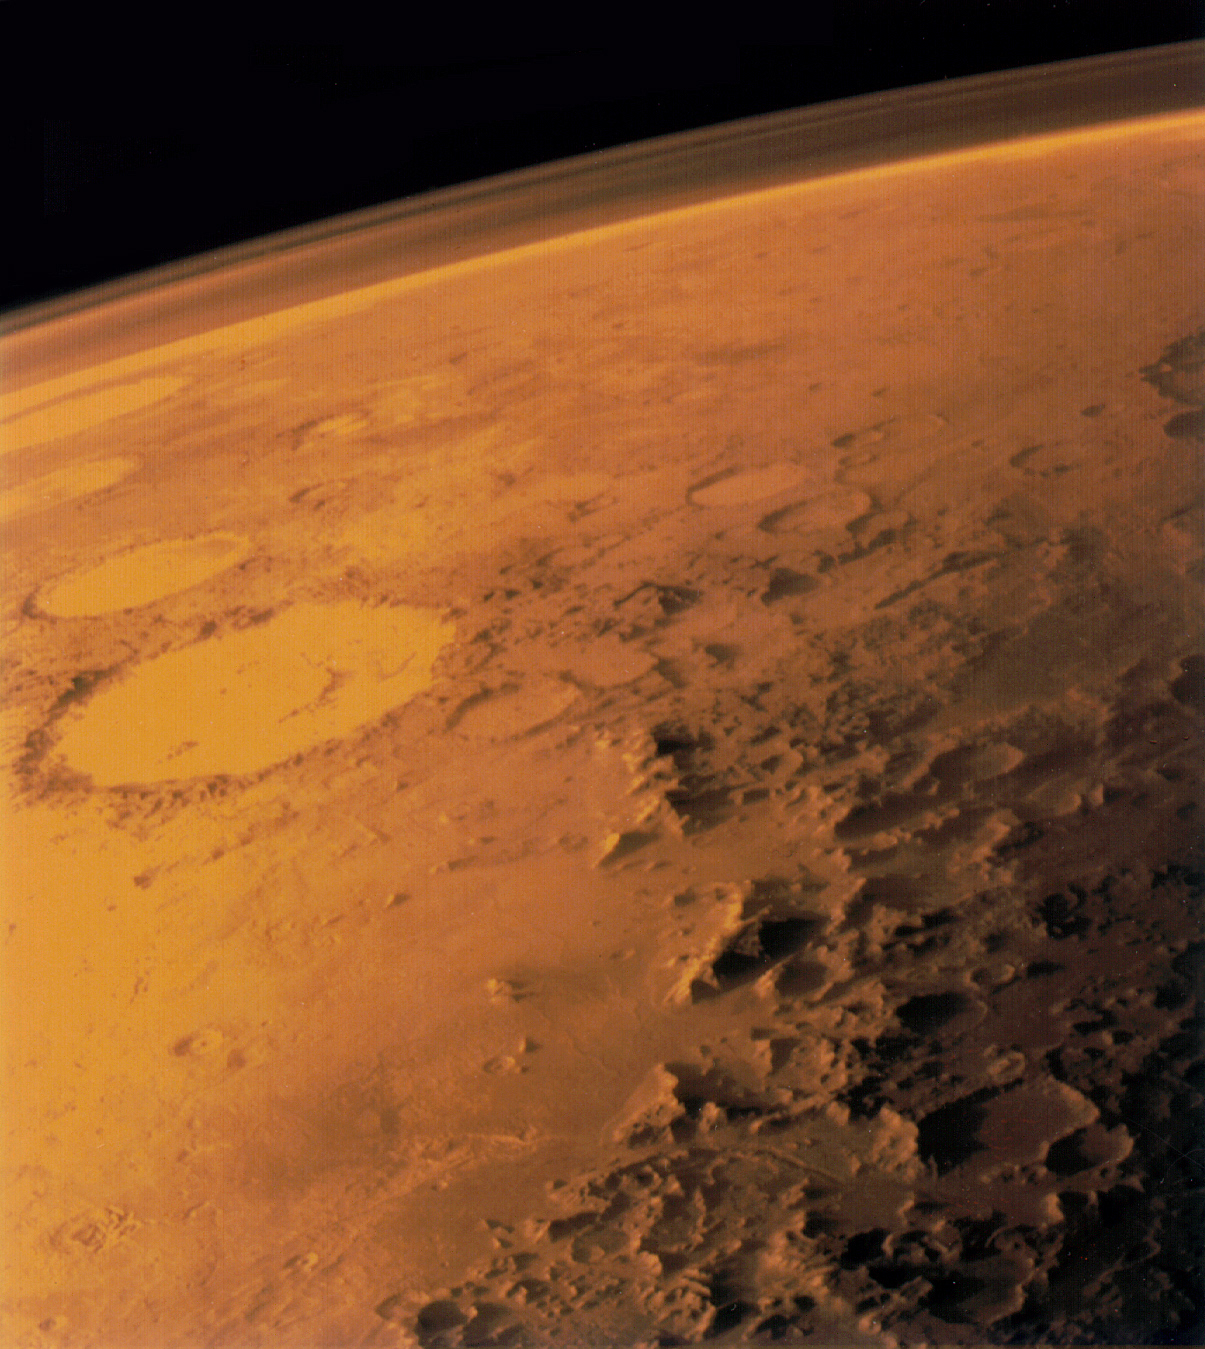 Marss thin atmosphere, visible on the horizon in this low-orbit photo.